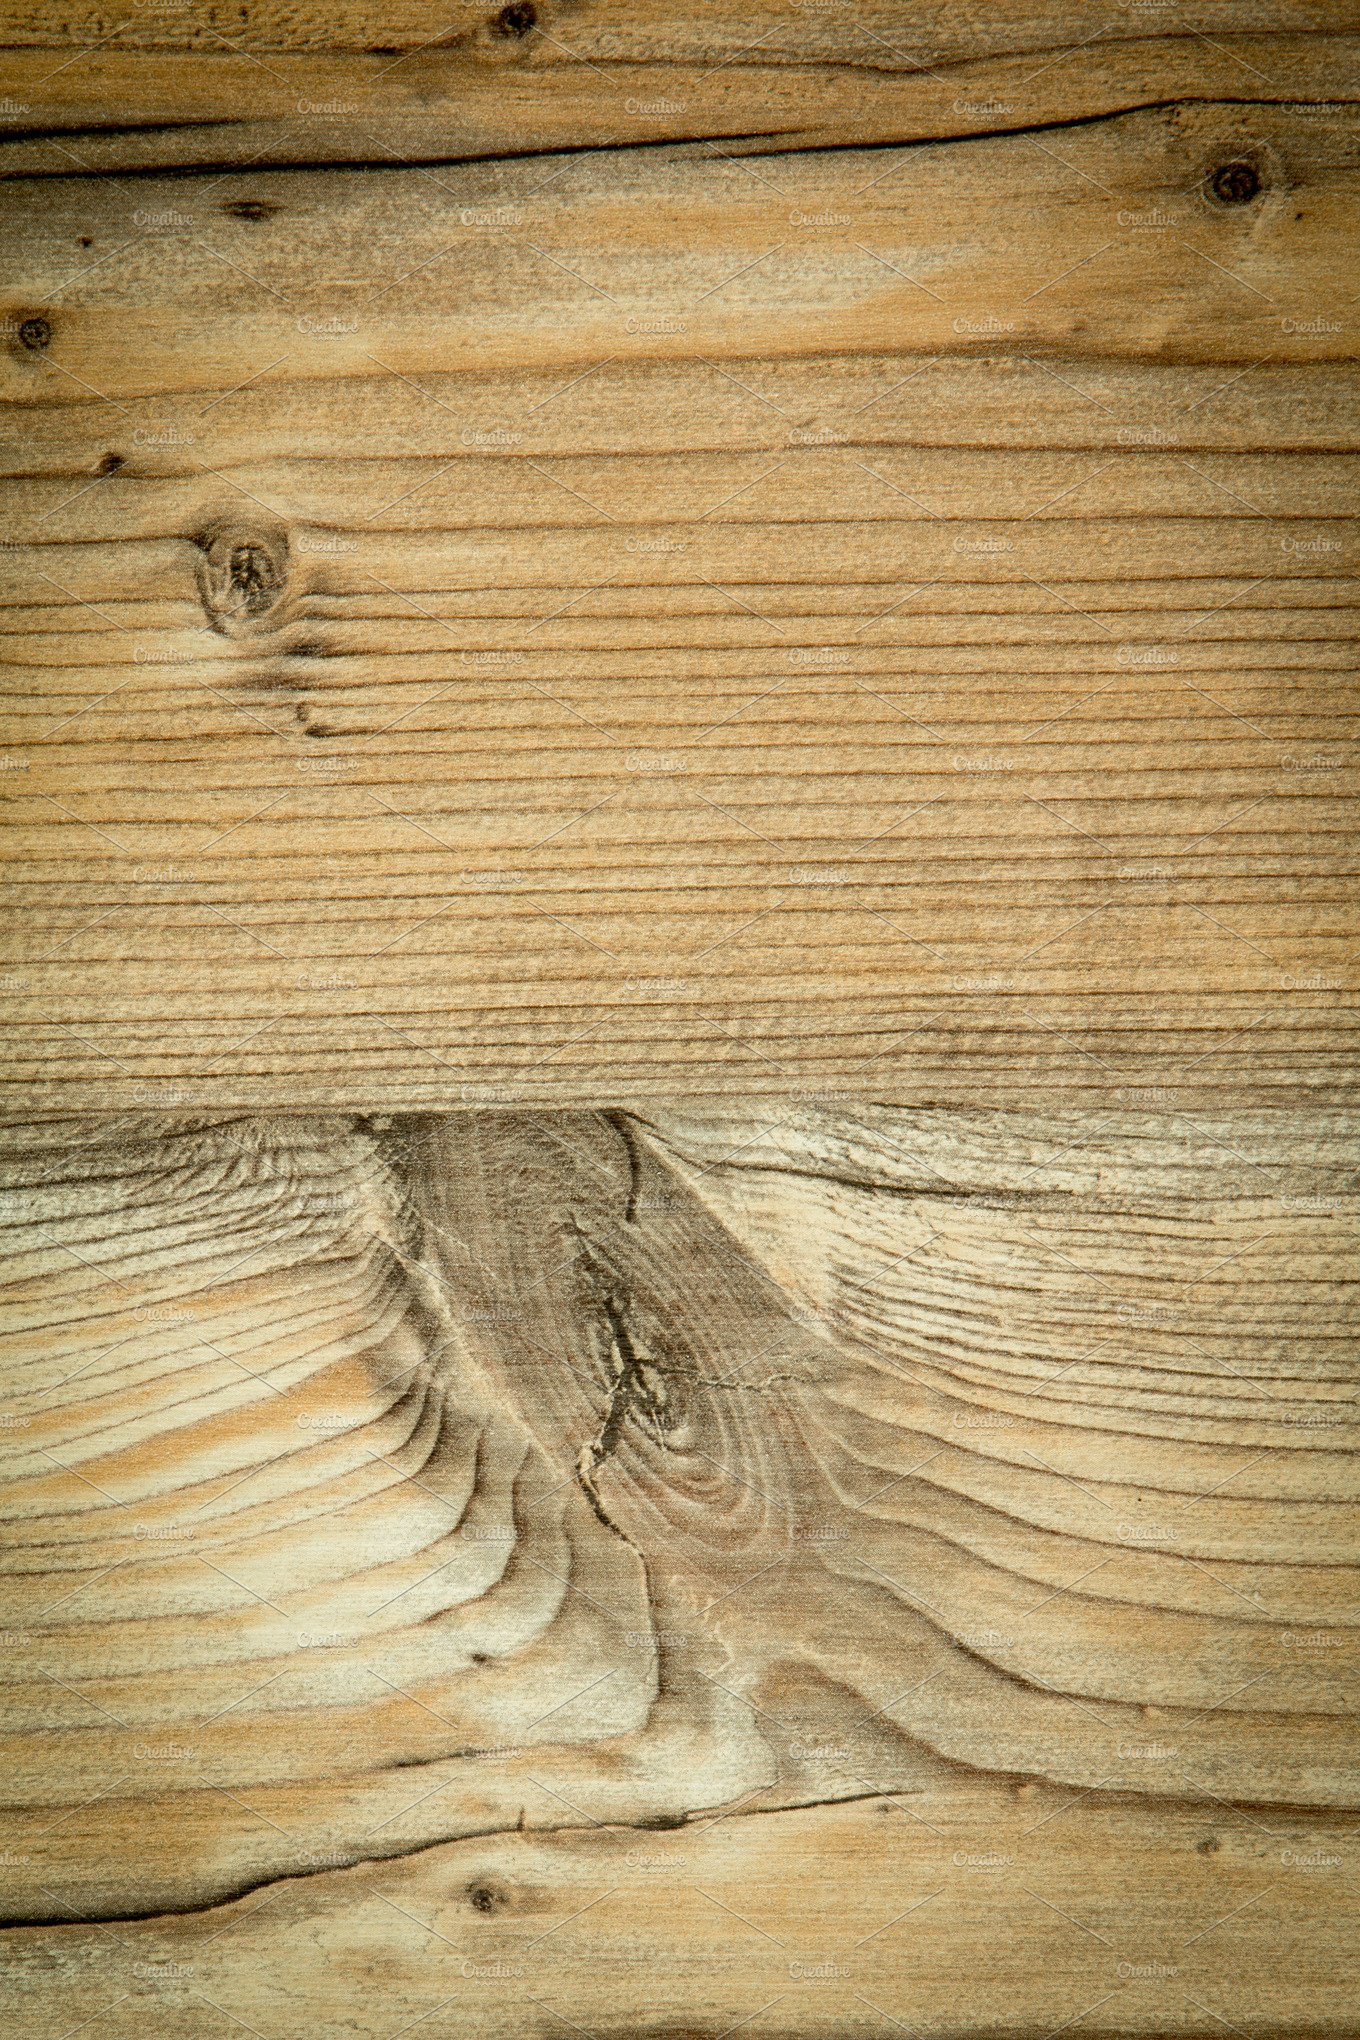 rustic wood grain for wallpaper abstract photos